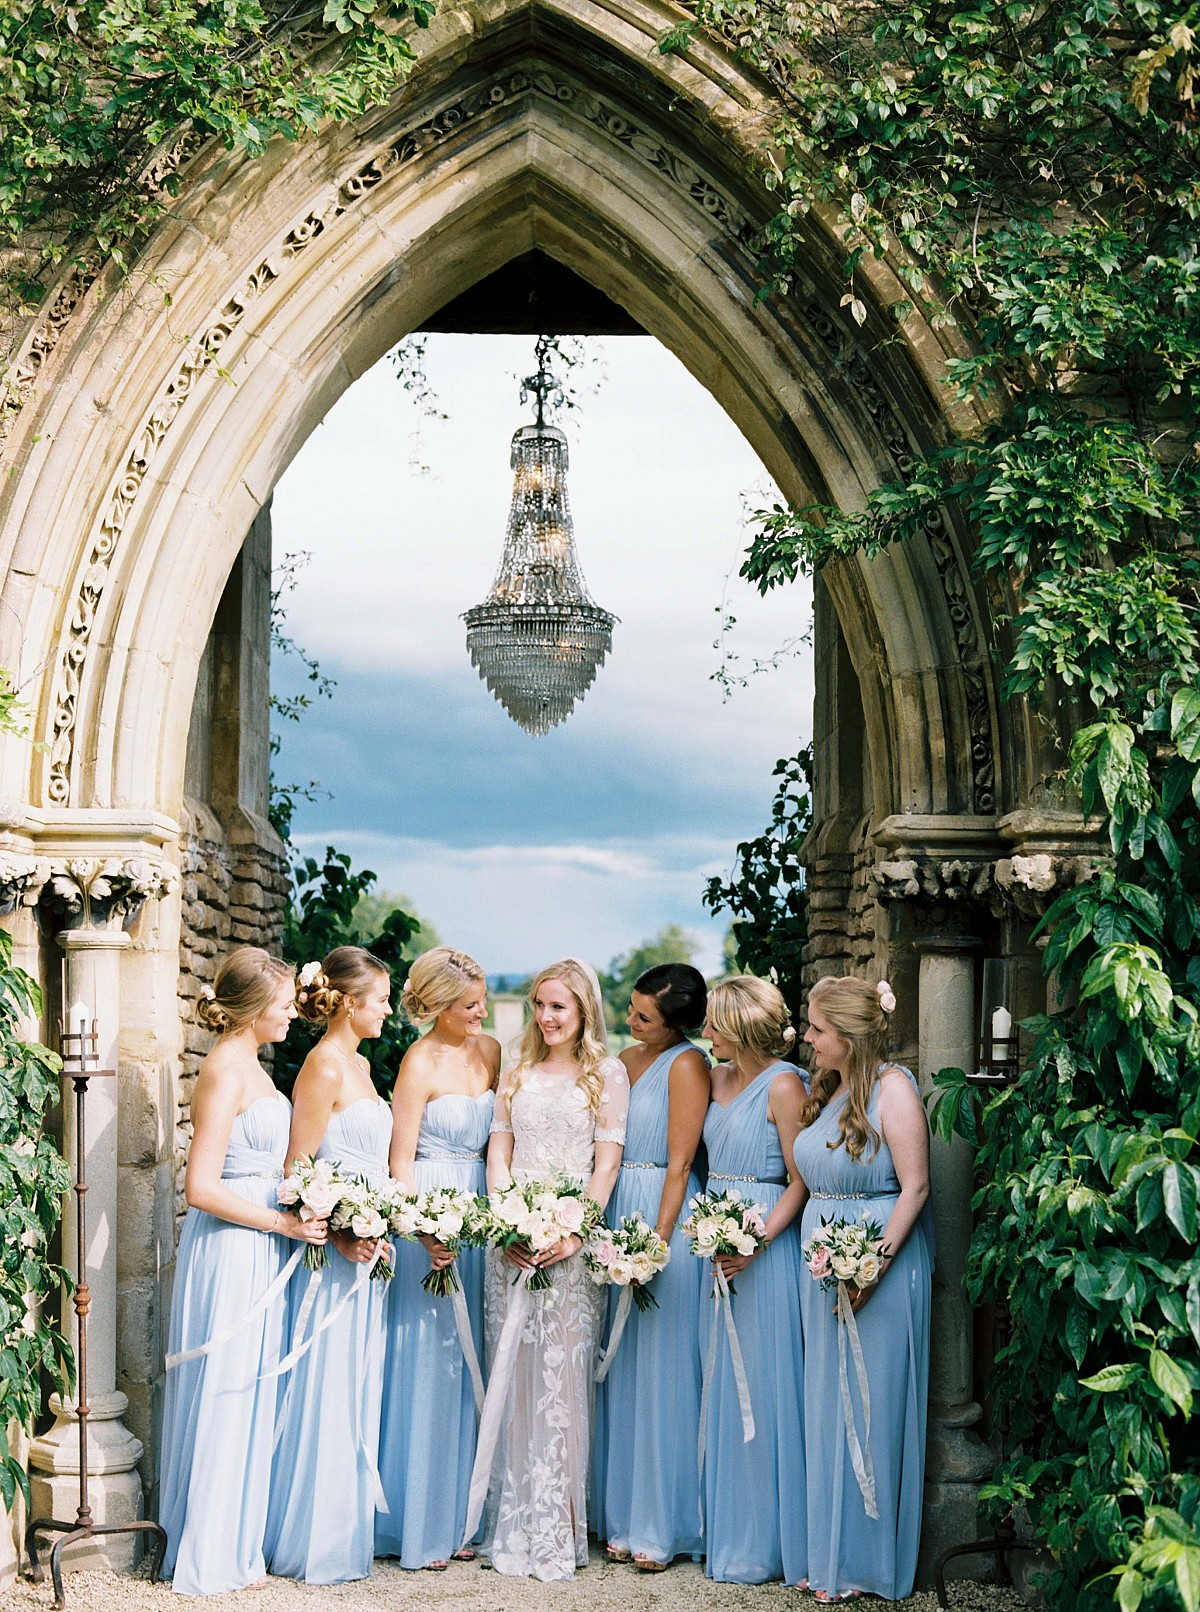 Kat and Tom's Elegant and Sentimental Wedding in the Cotswolds